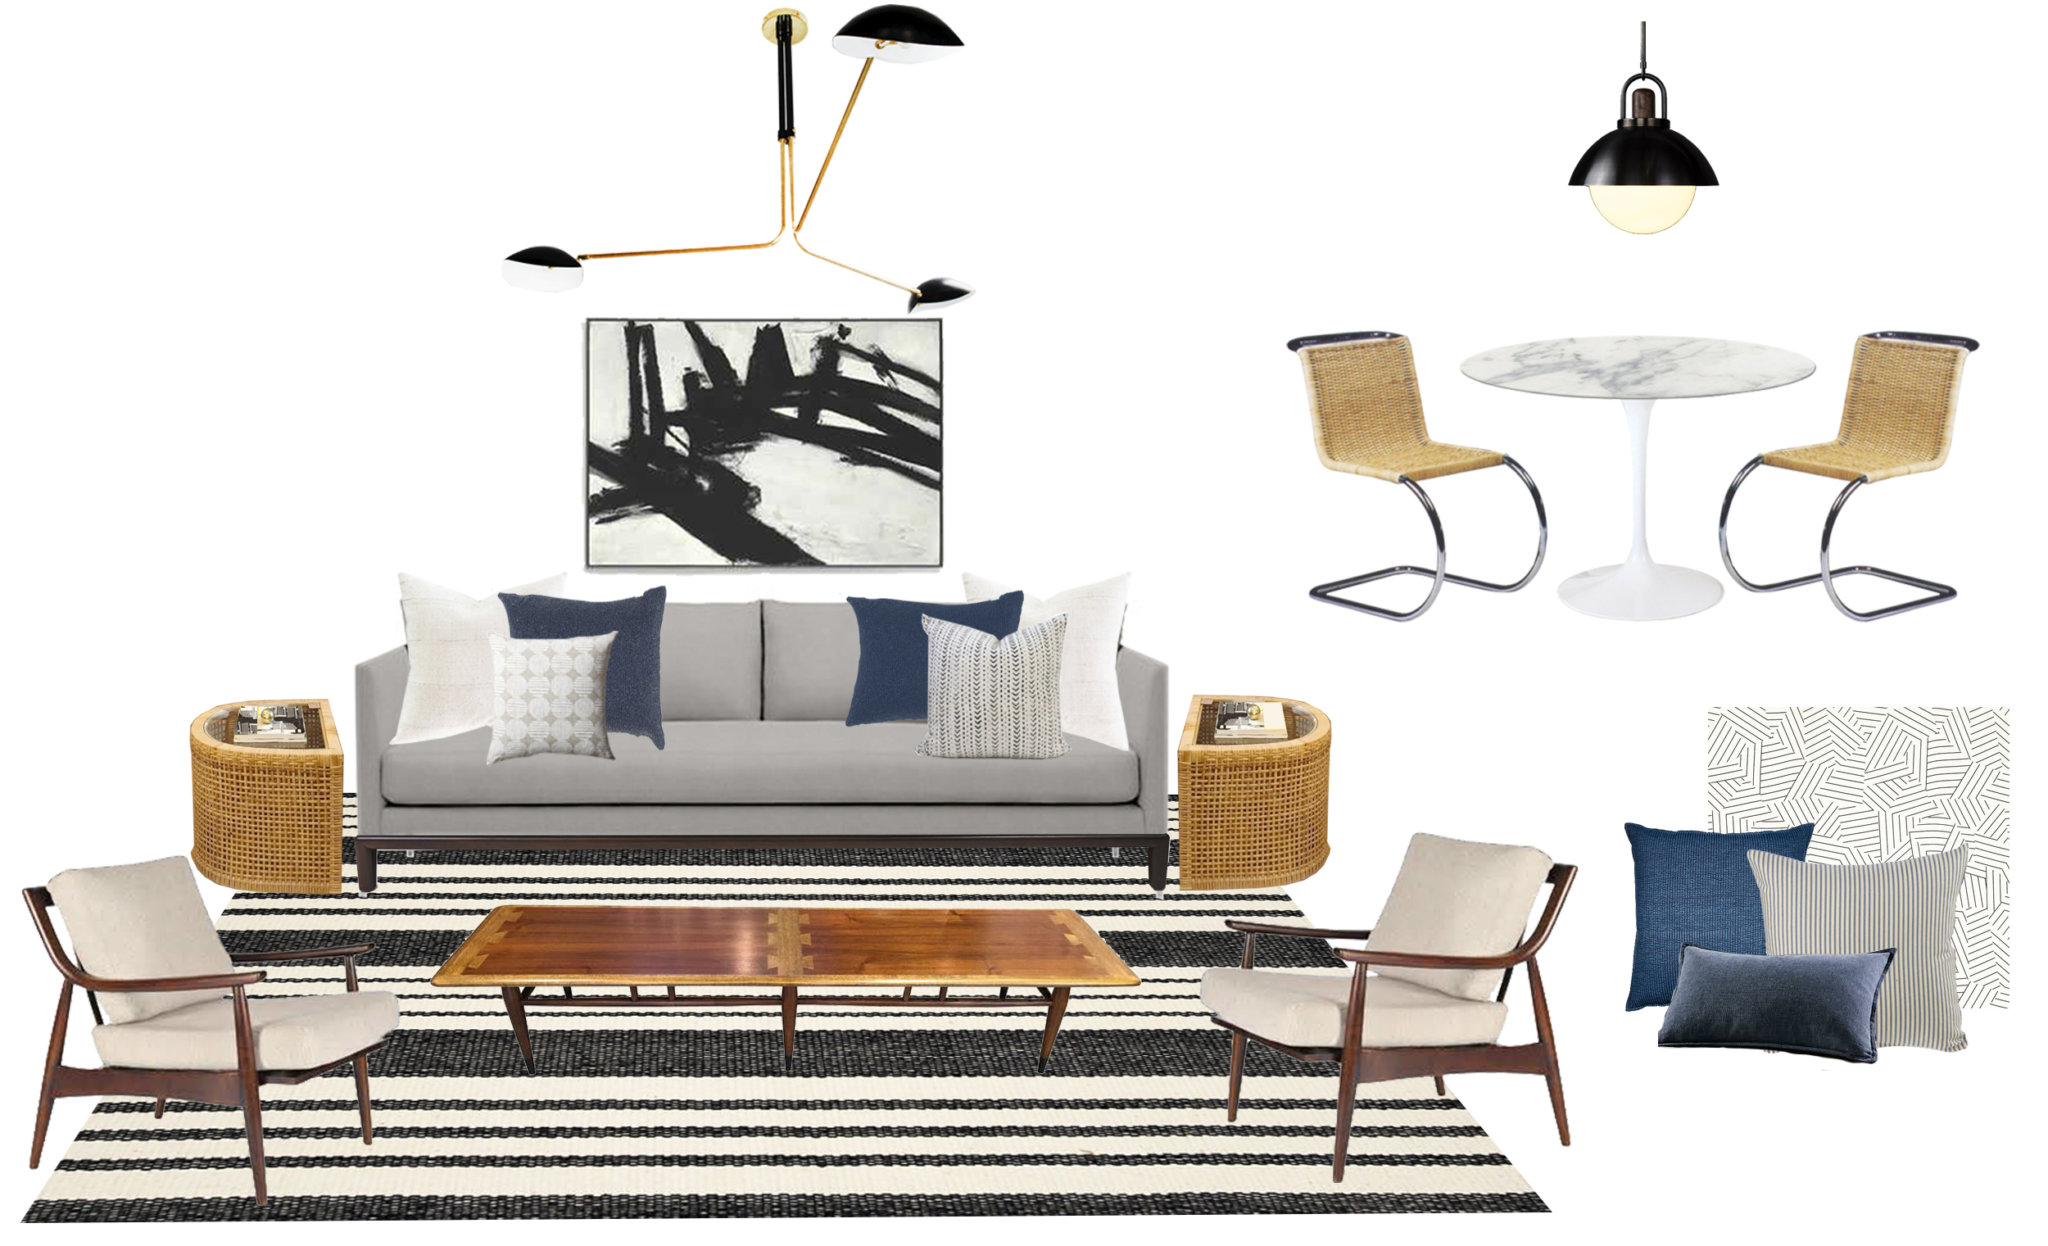 Ginny_Macdonald_Full-Design_Sunroom_Introduction_Moodboard-Final